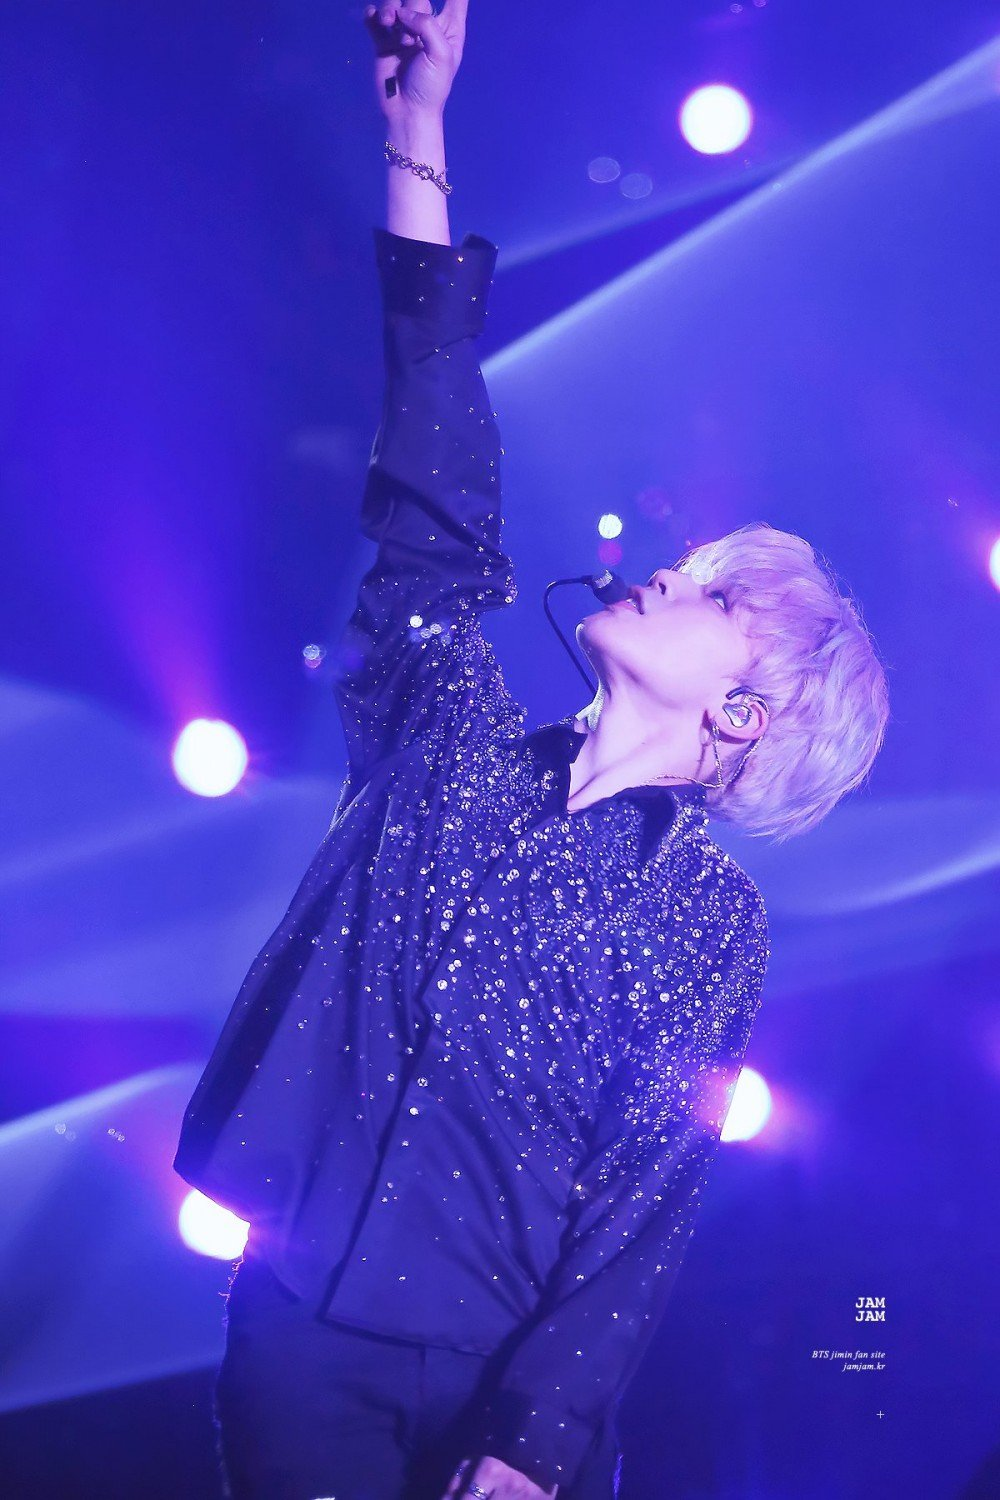 Serendipity show: BTS shows their admiration for Jimin